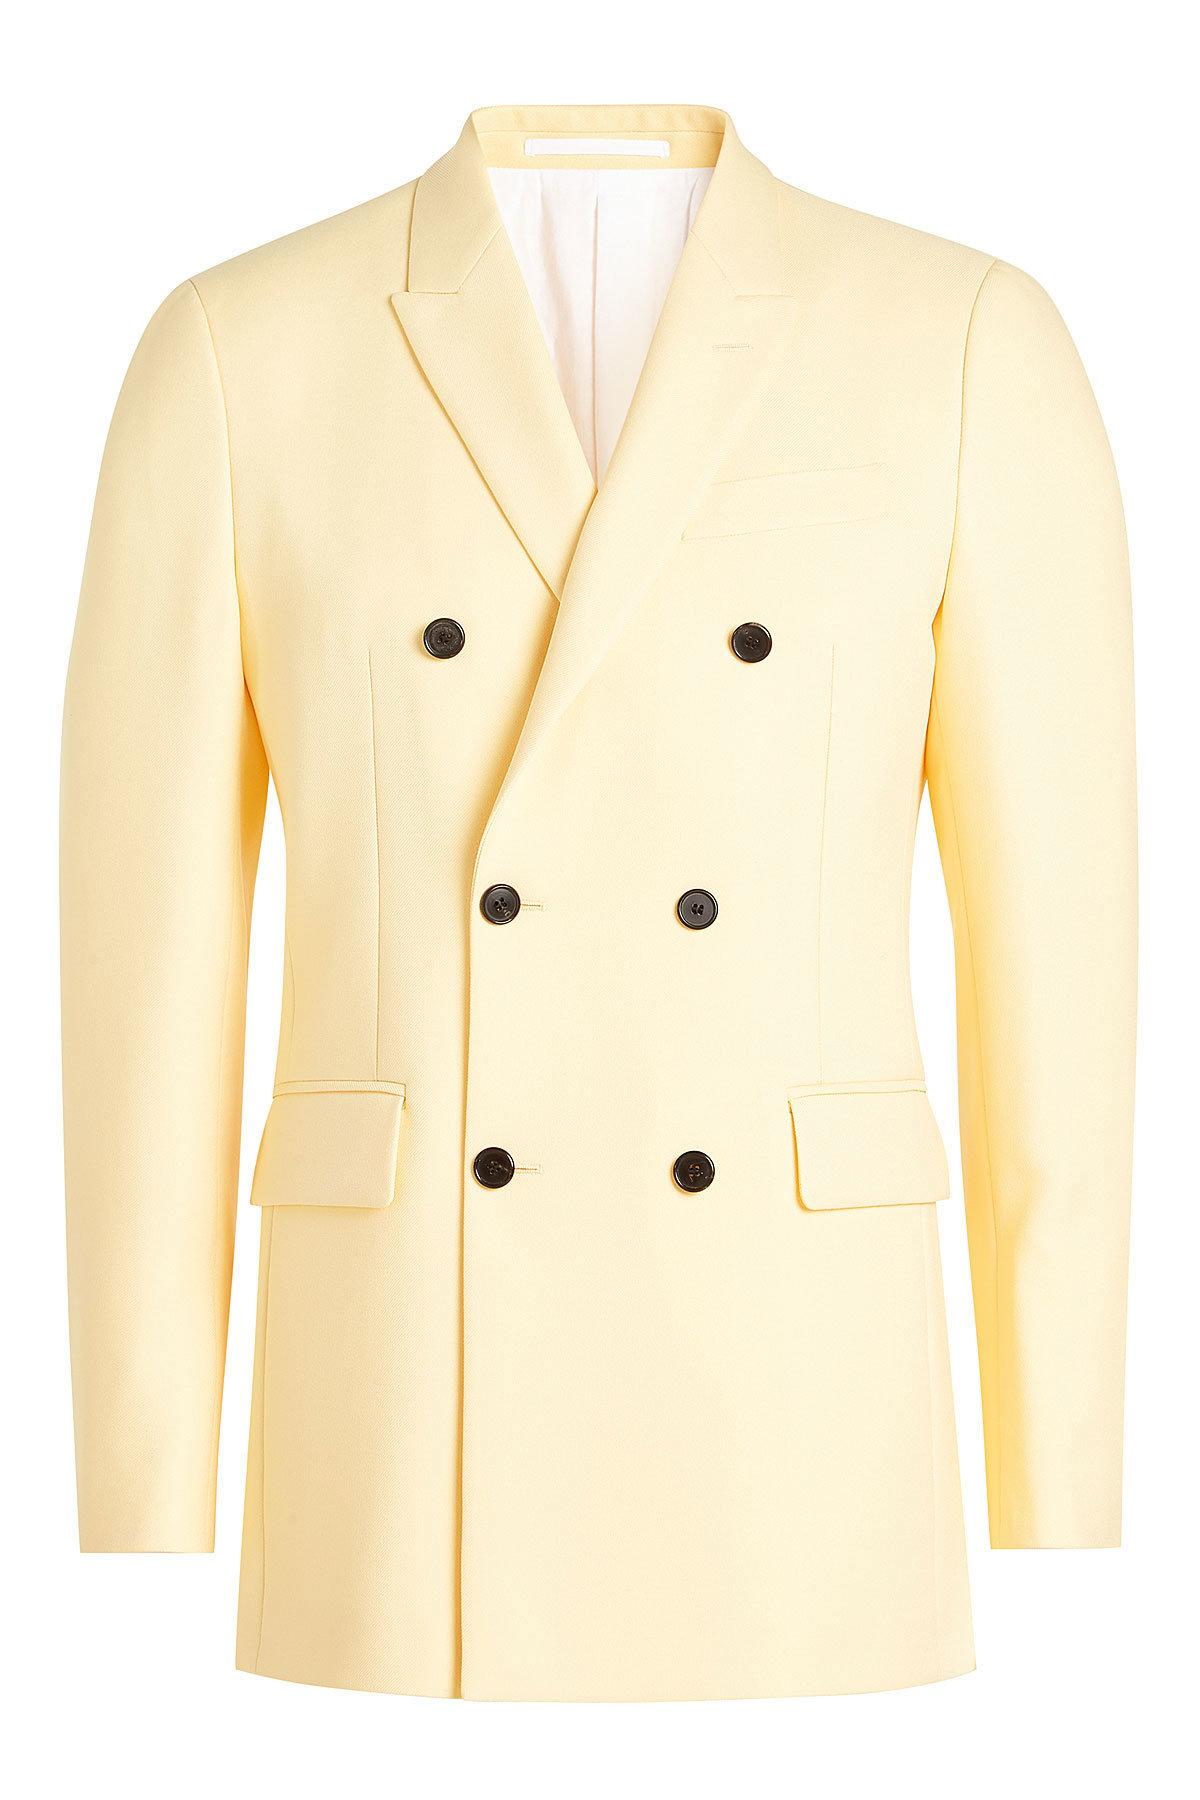 65c804cbb339 CALVIN KLEIN 205W39NYC Double Breasted Blazer in Natural for Men - Lyst